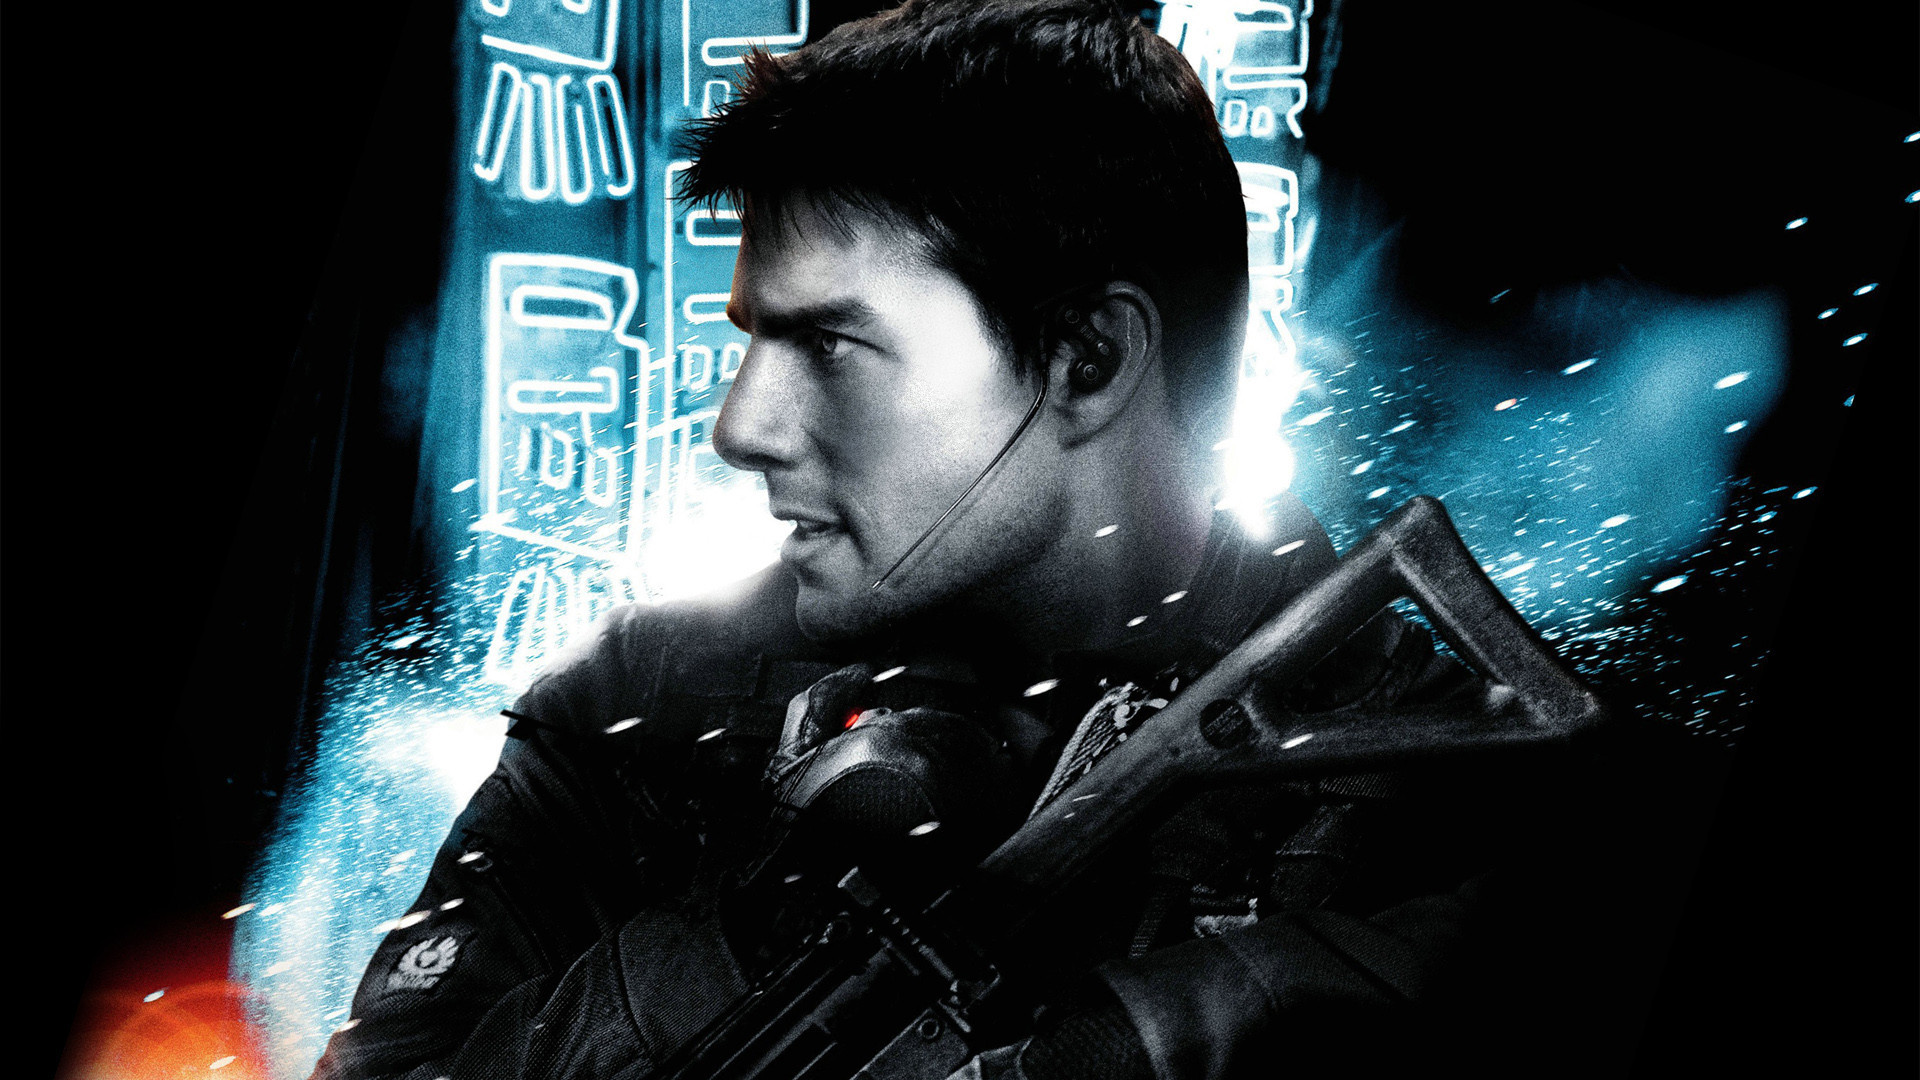 Mission impossible iii hd wallpaper background image - Mission impossible wallpaper ...